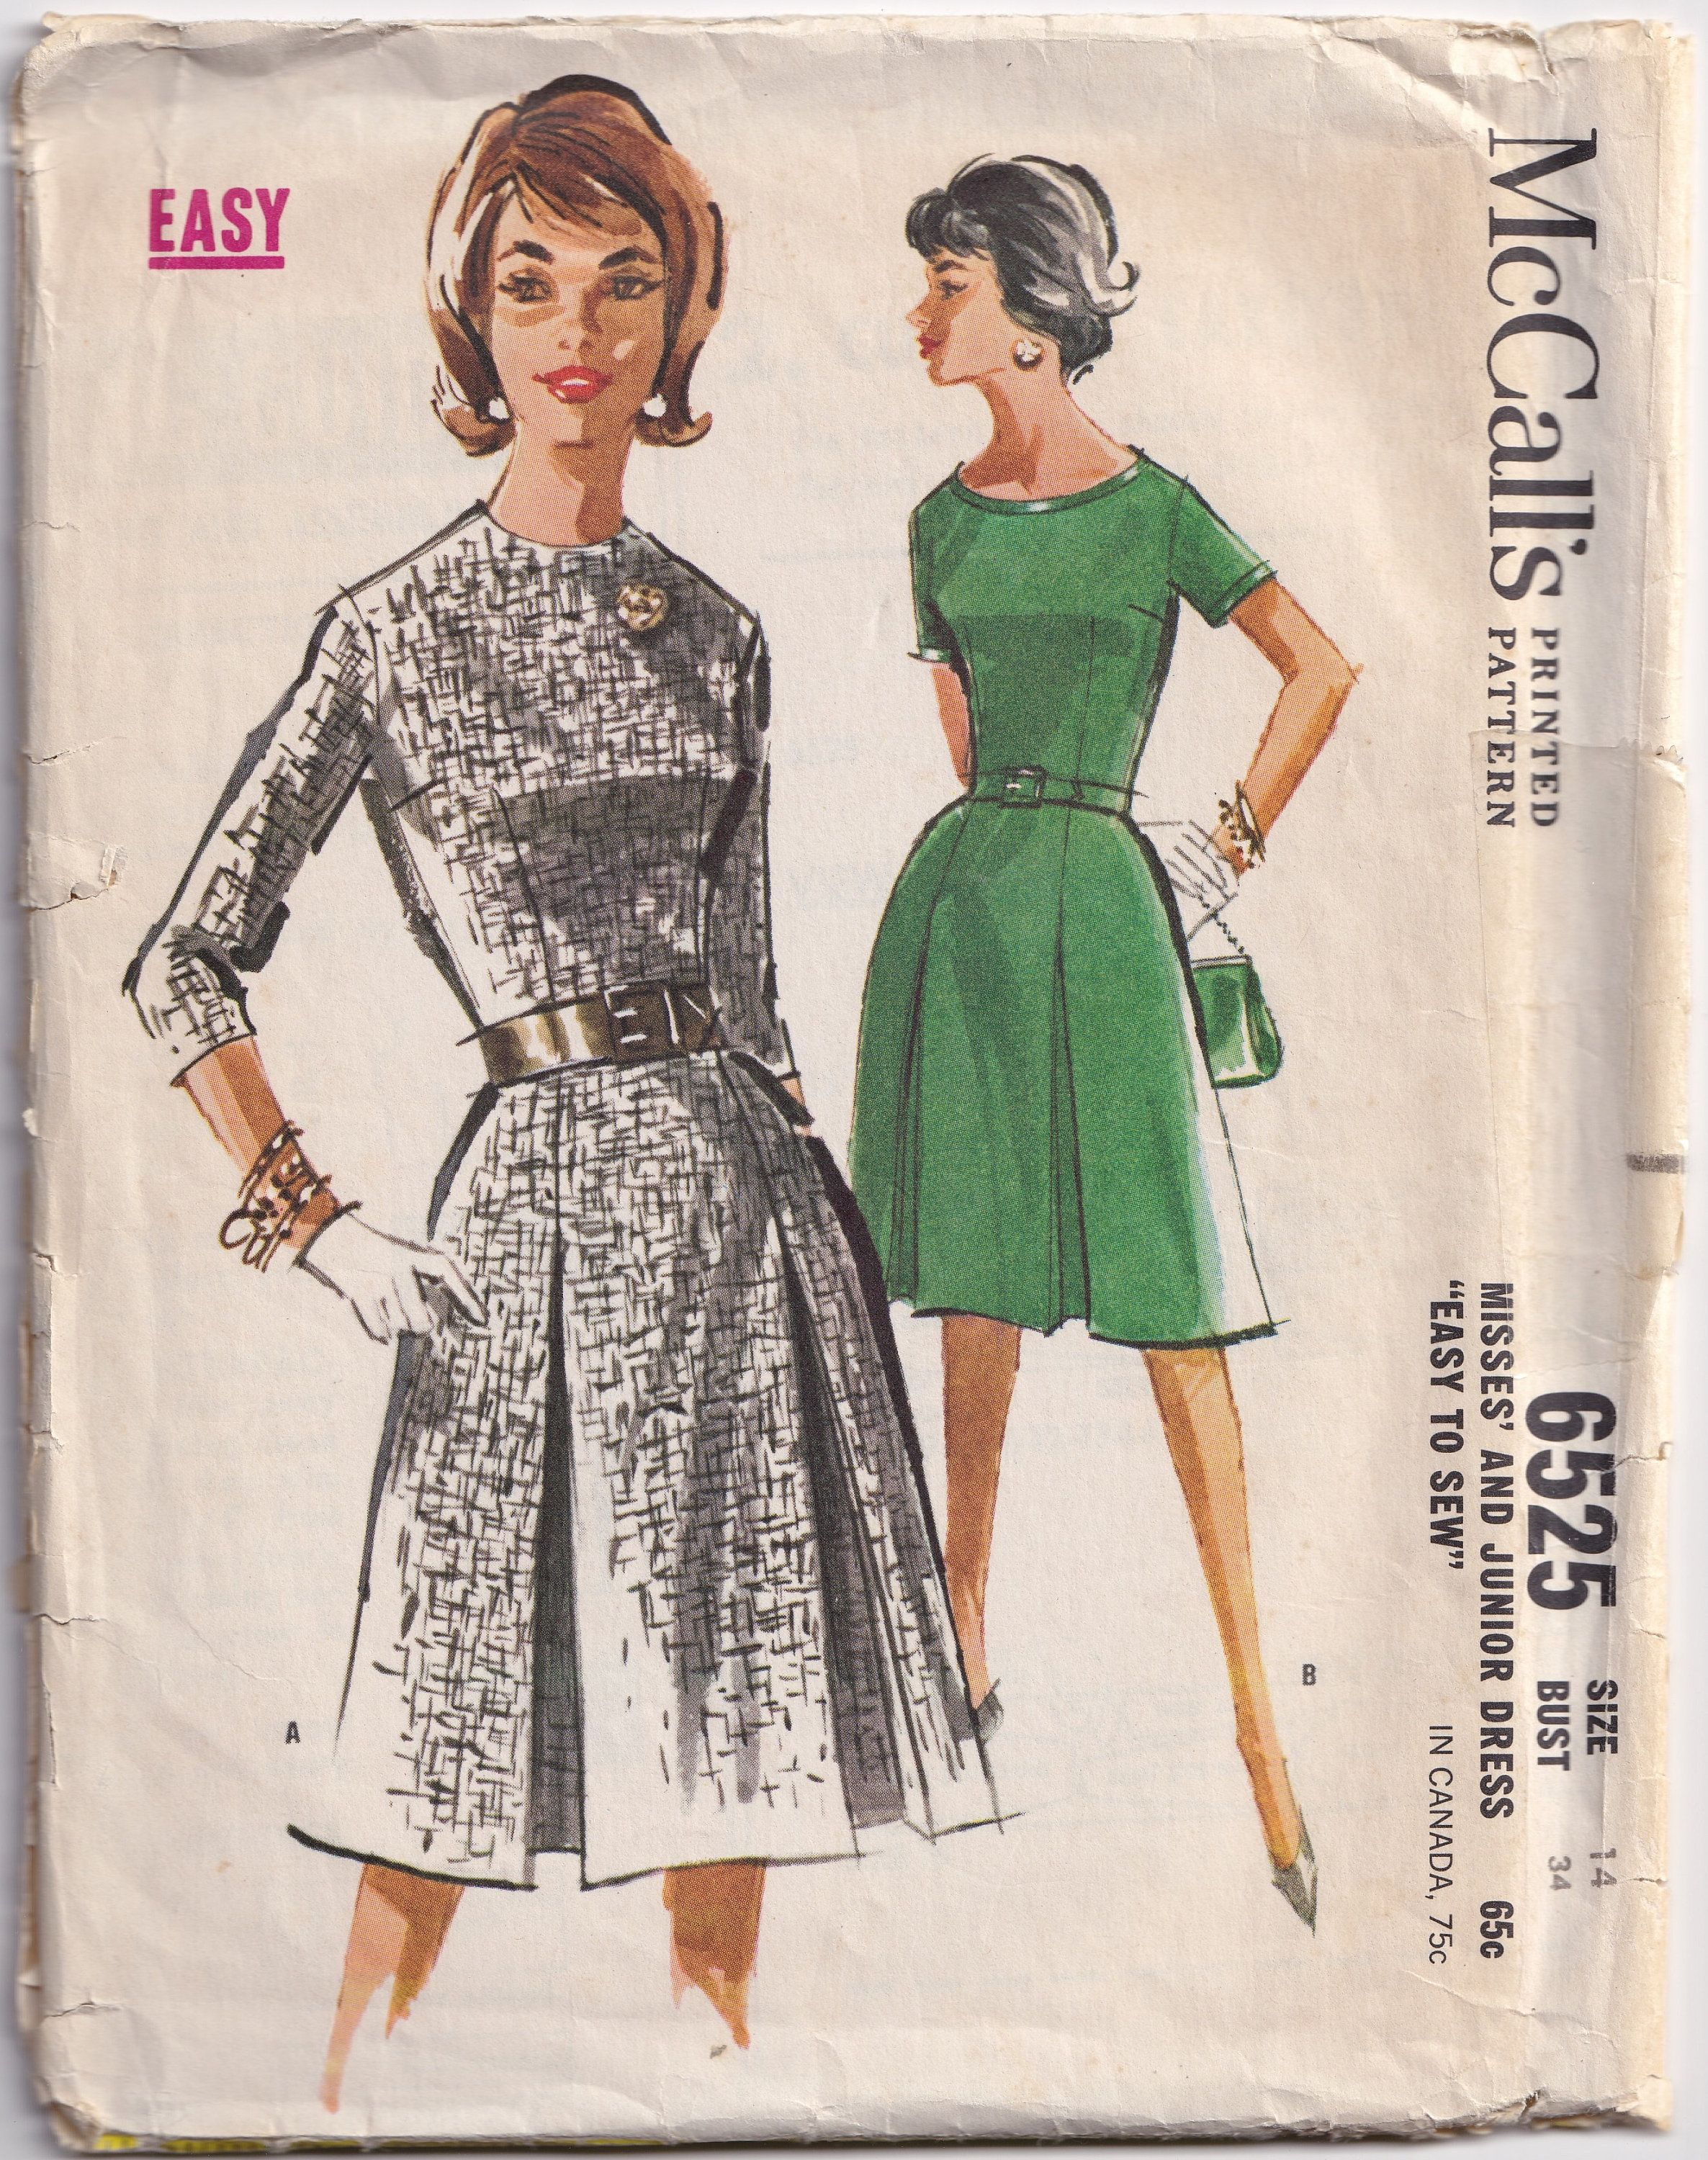 Vintage 1962 Mccall S 6525 Sewing Pattern Misses Etsy In 2020 Vintage Outfits Size 14 Dresses Dresses